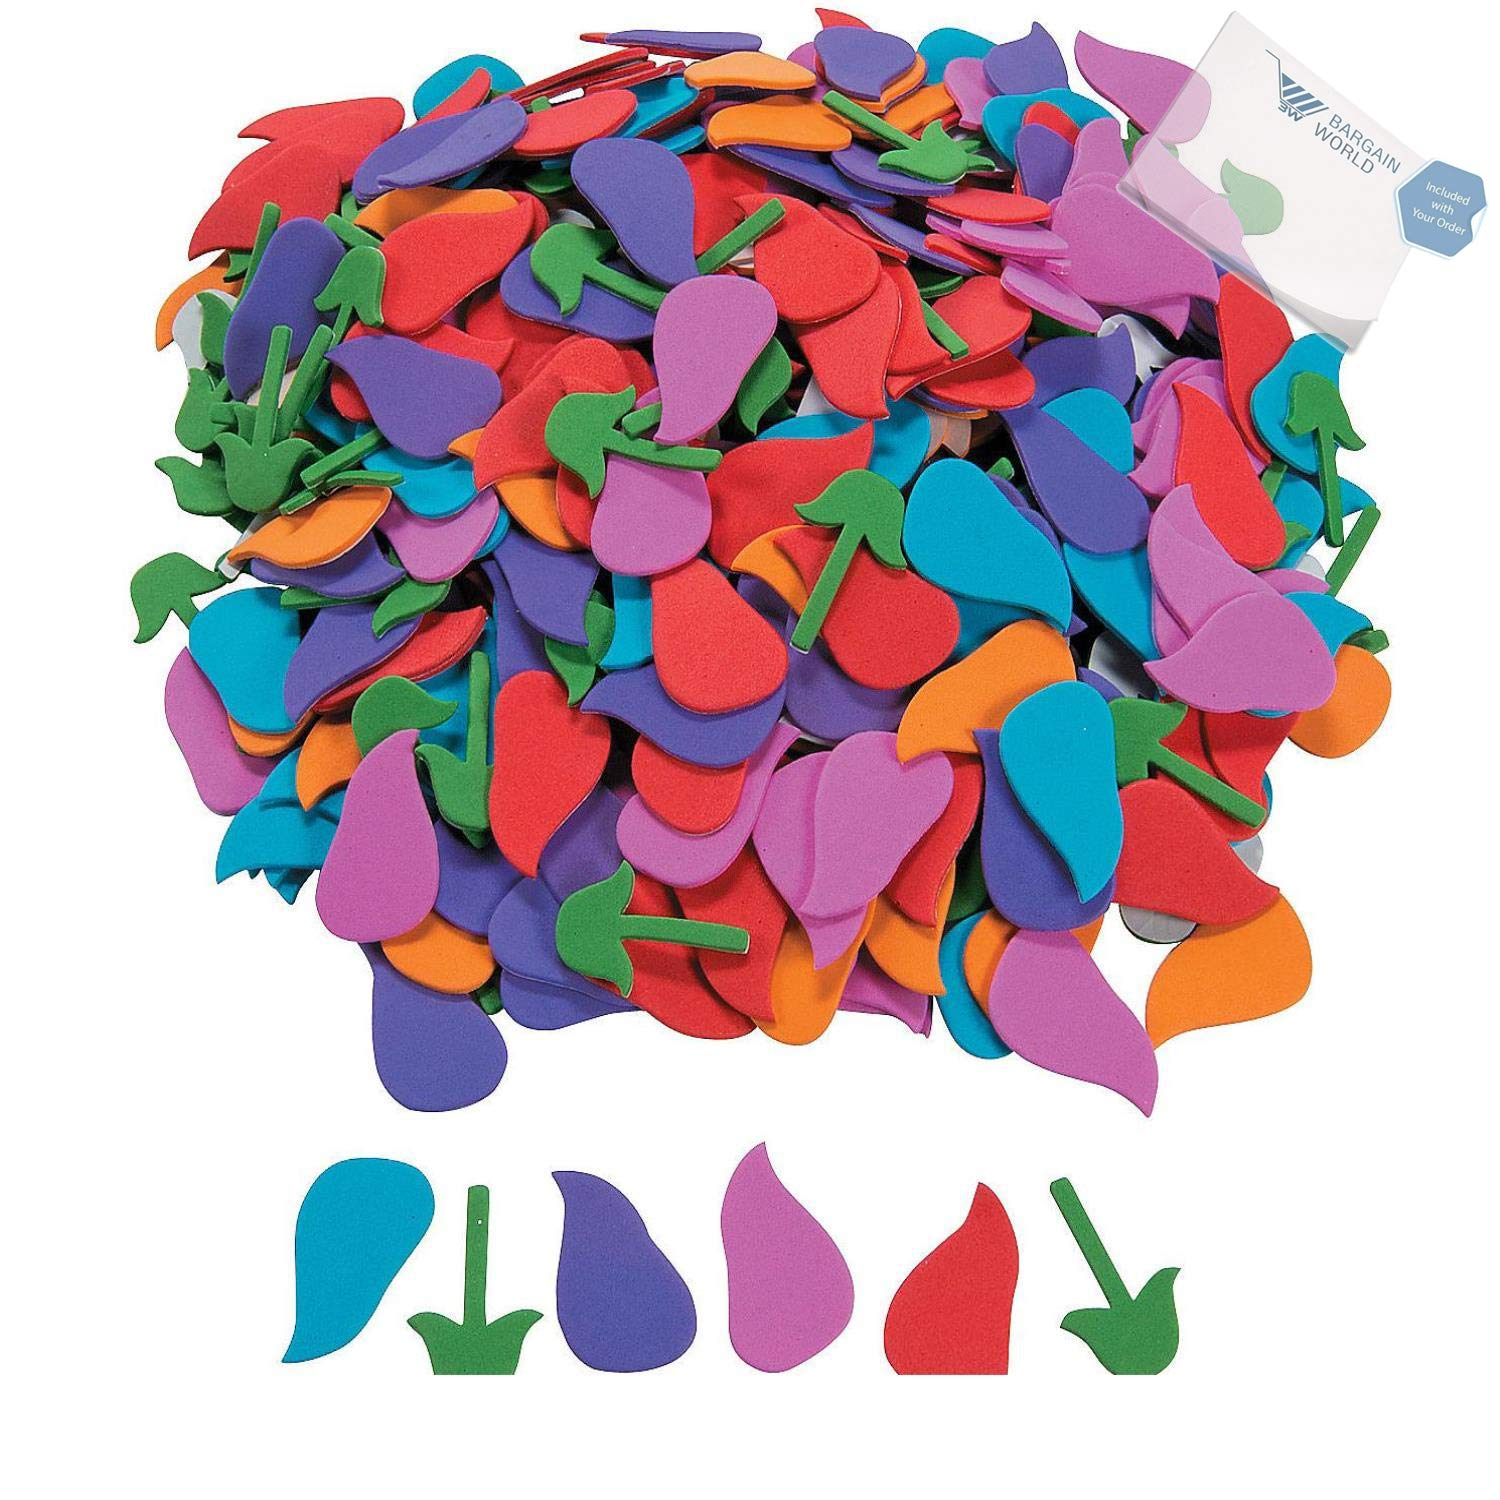 Bargain World Tulip Foam Shapes (With Sticky Notes) by Bargain World (Image #1)